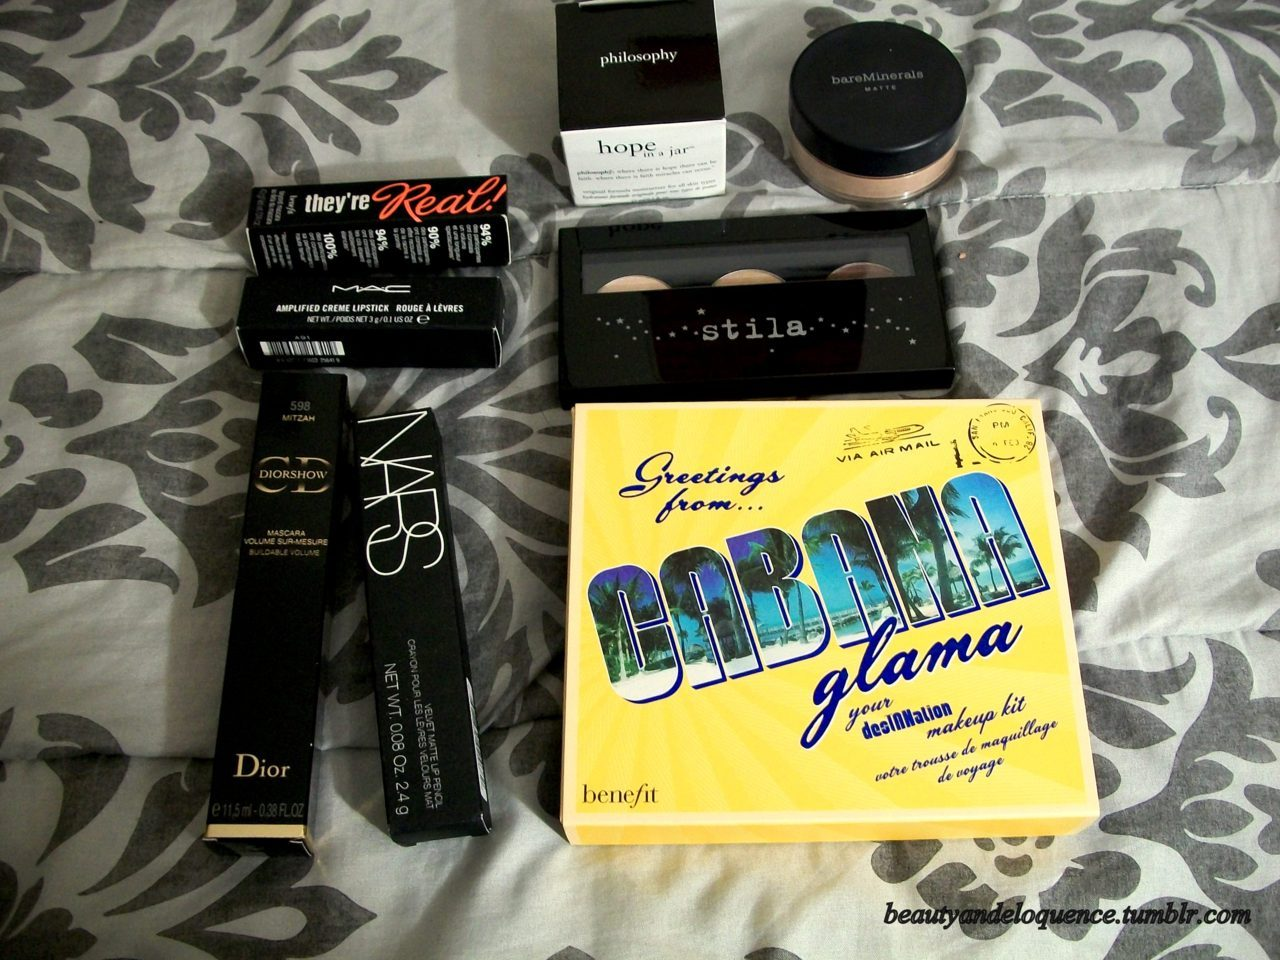 A Mini Spring Haul. This is what I got from my Sephora Chic Week Purchase & one MAC item: Philosophy's Mini Hope in a Jar bareMinerals Matte Foundation in Fairly Medium Stila Hollywood Trio Palette in Hollywood Blvd Benefit's Cabana Glama palette NARS Velvet Matte Lip Pencil in Toundra Dior Diorshow Mascara in Mitzah MAC Reel Sexy Collection Lipstick in Watch Me Simmer Benefit's Mini they're Real! Mascara